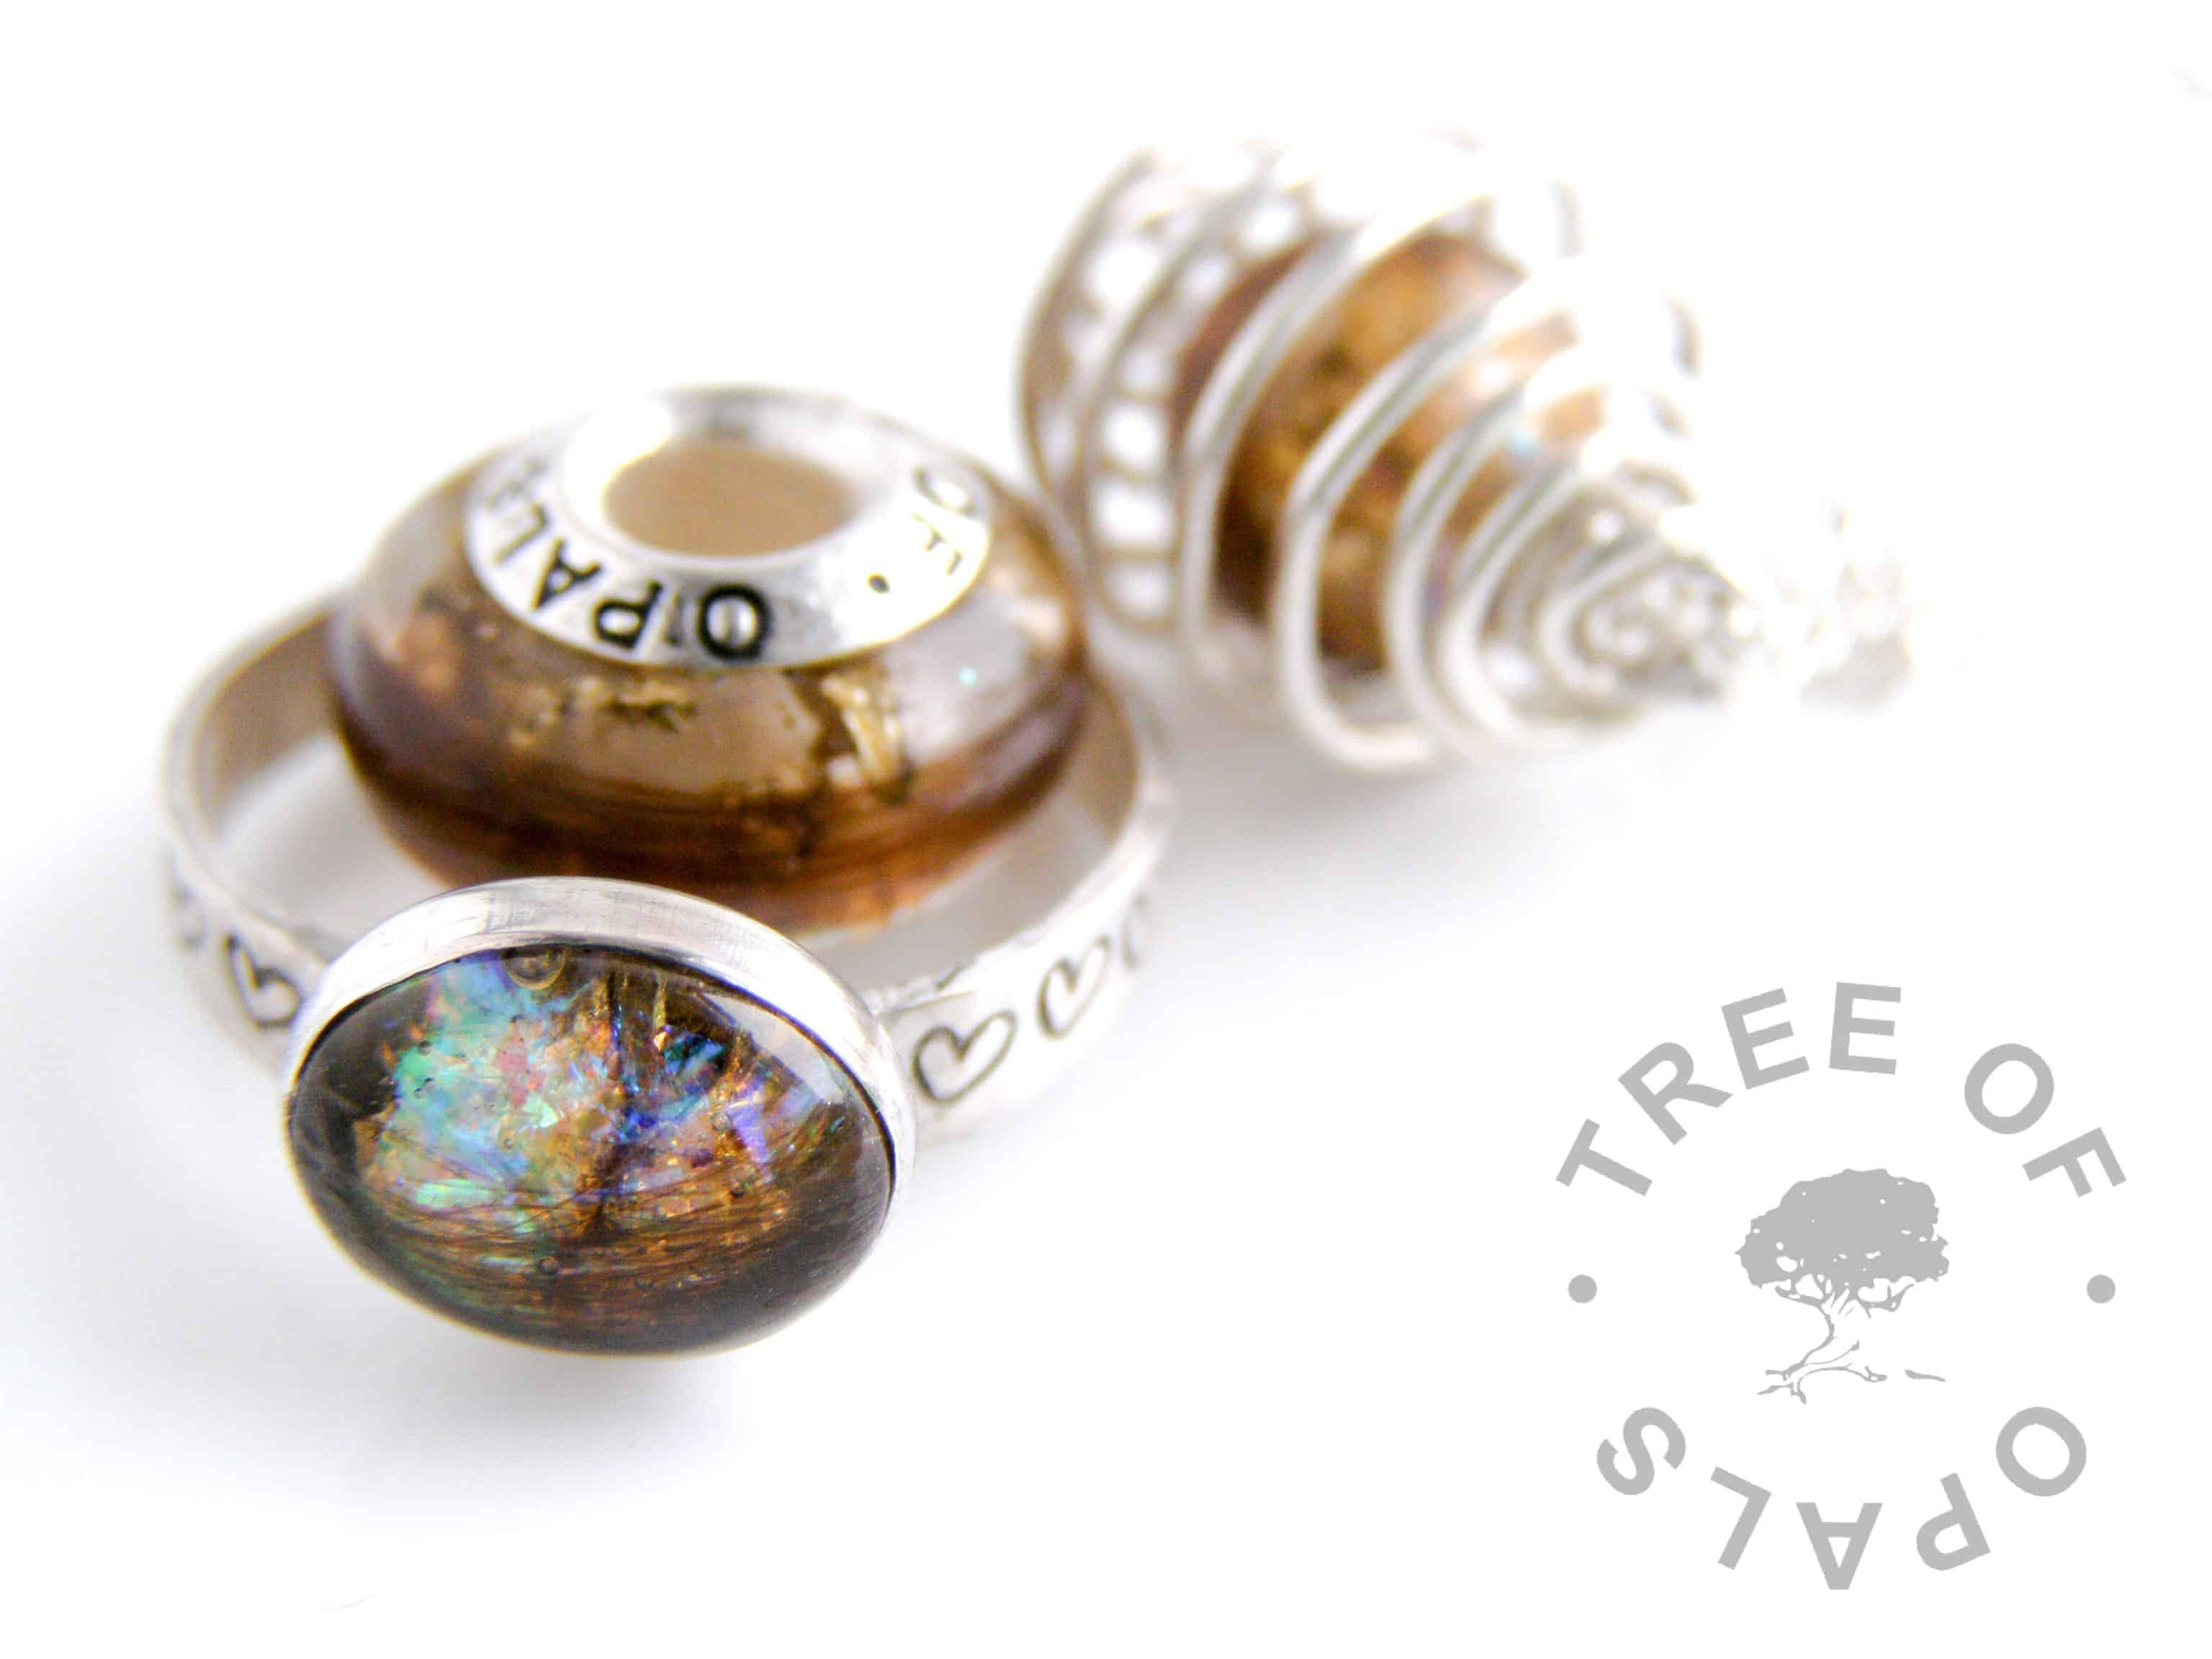 Tree of Opals keepsake jewellery 2017